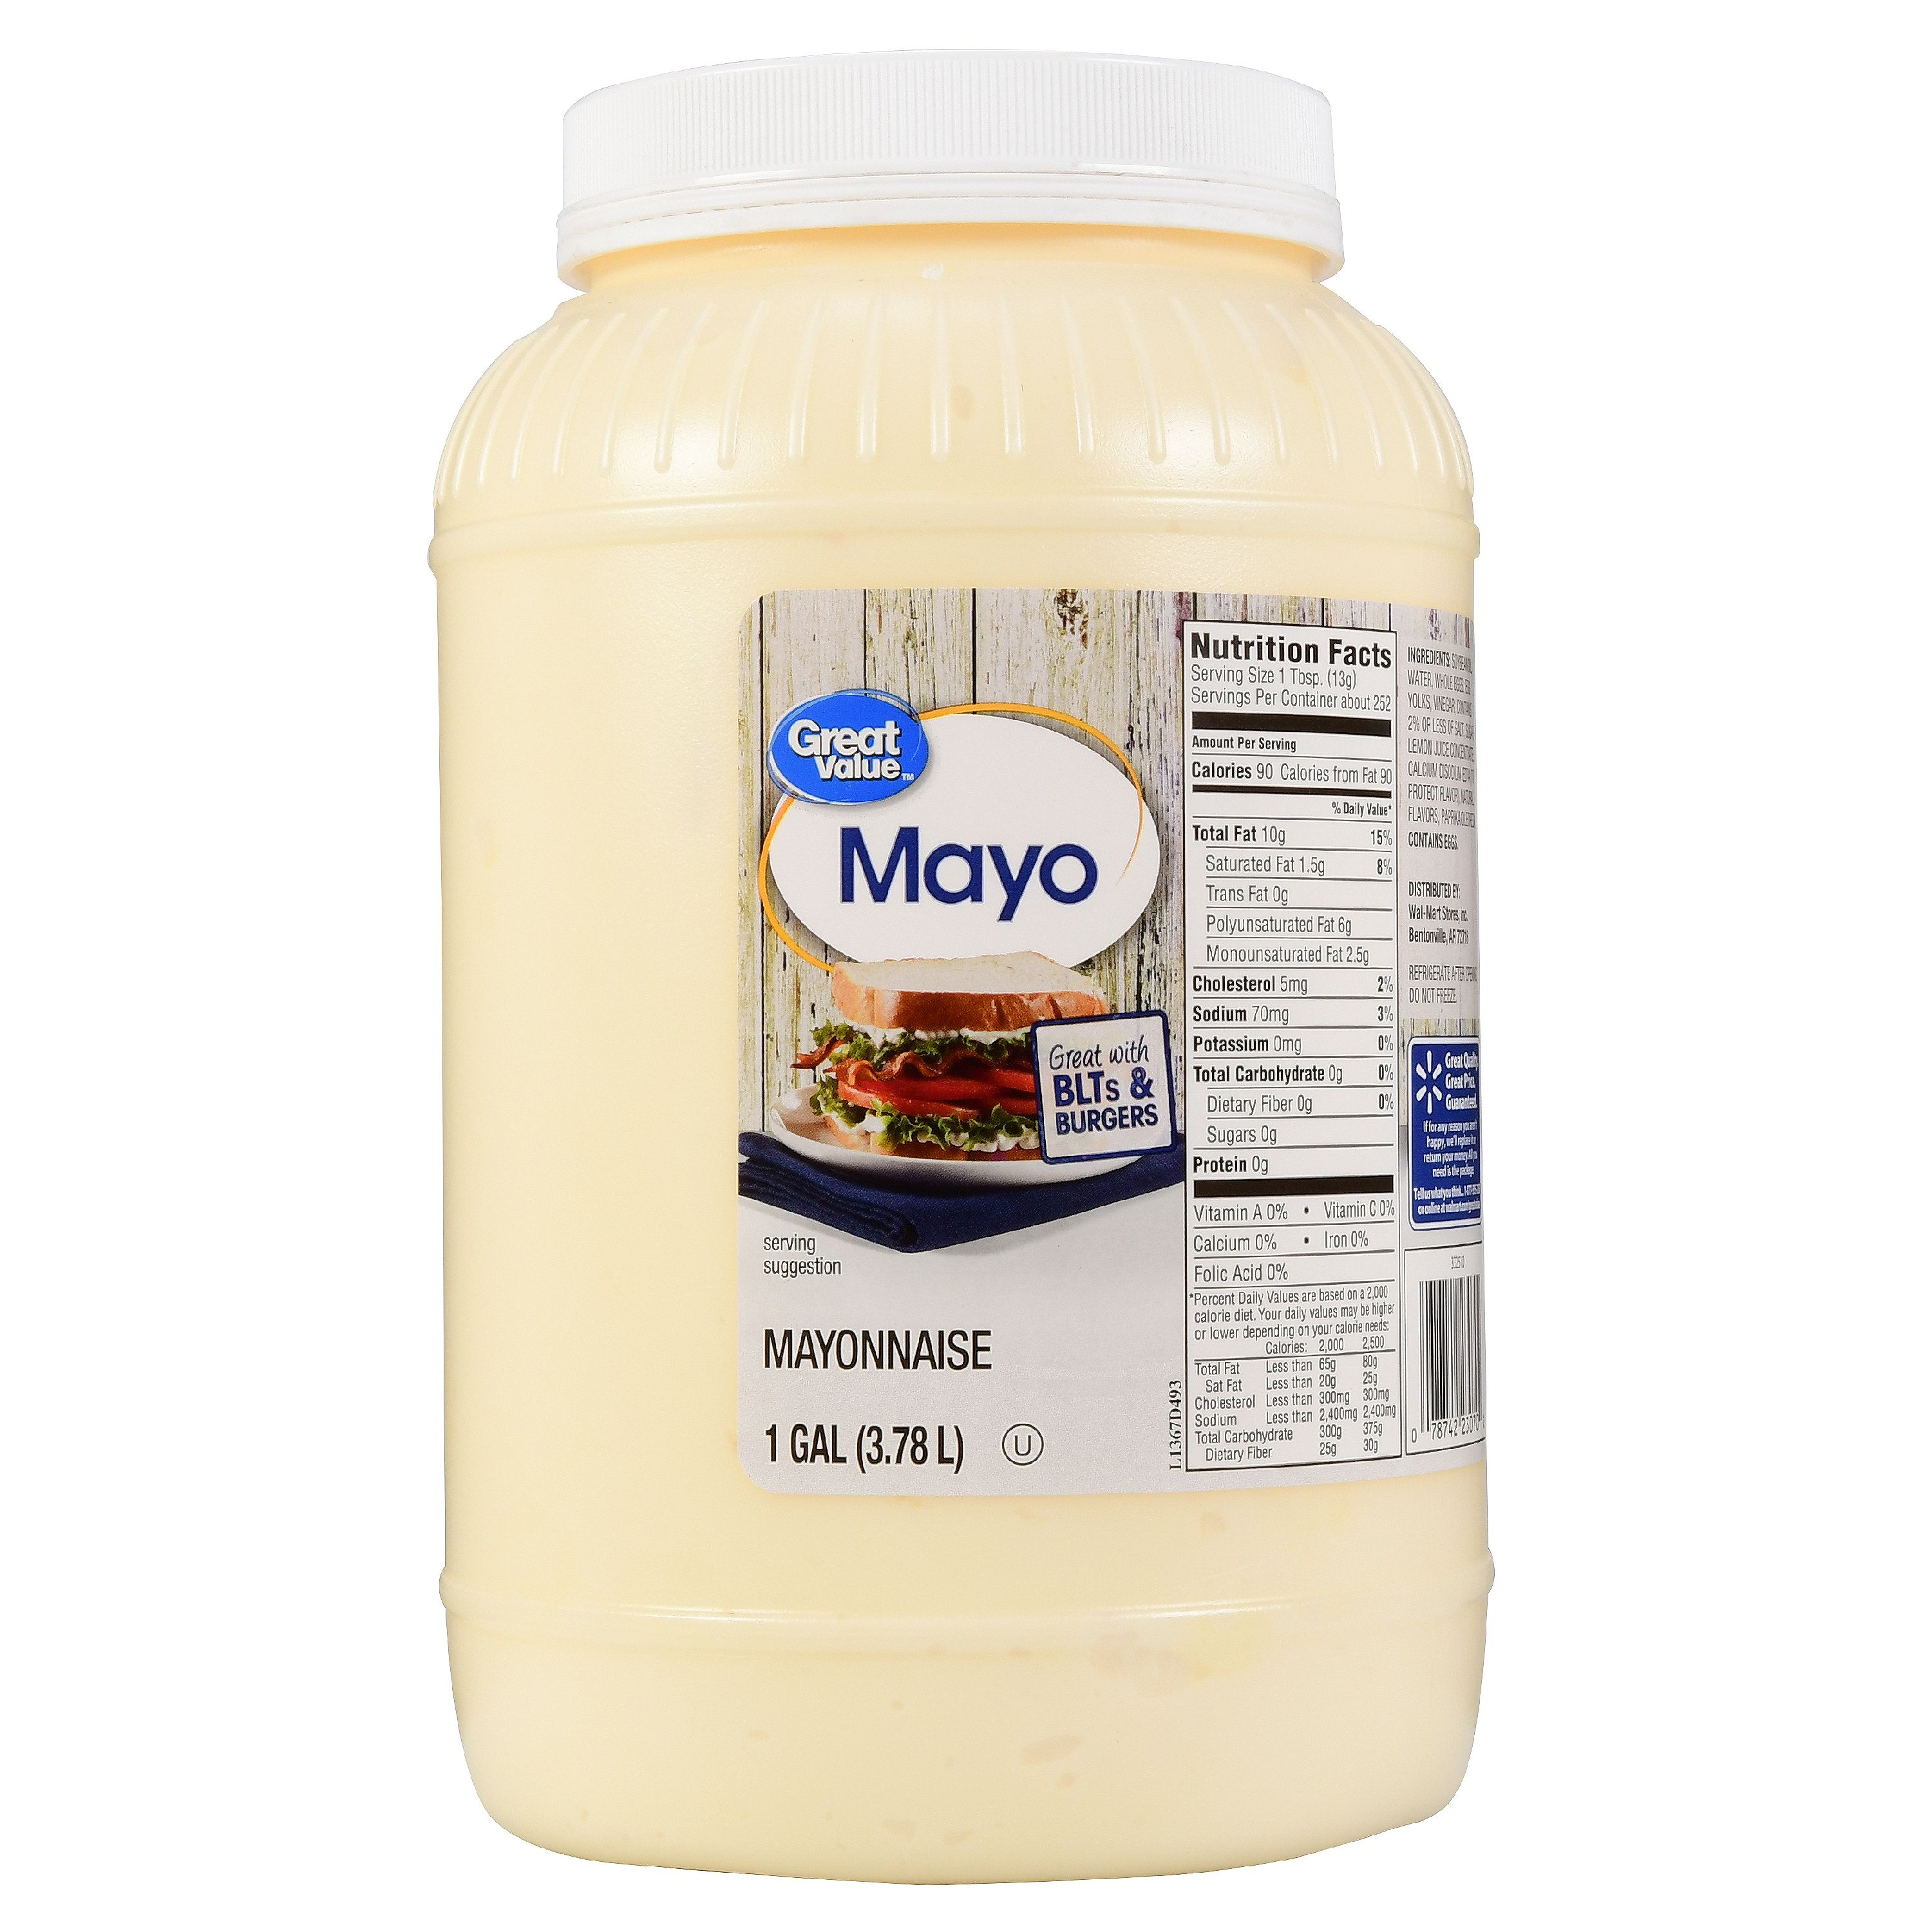 Great Value Mayonnaise, 1 gal